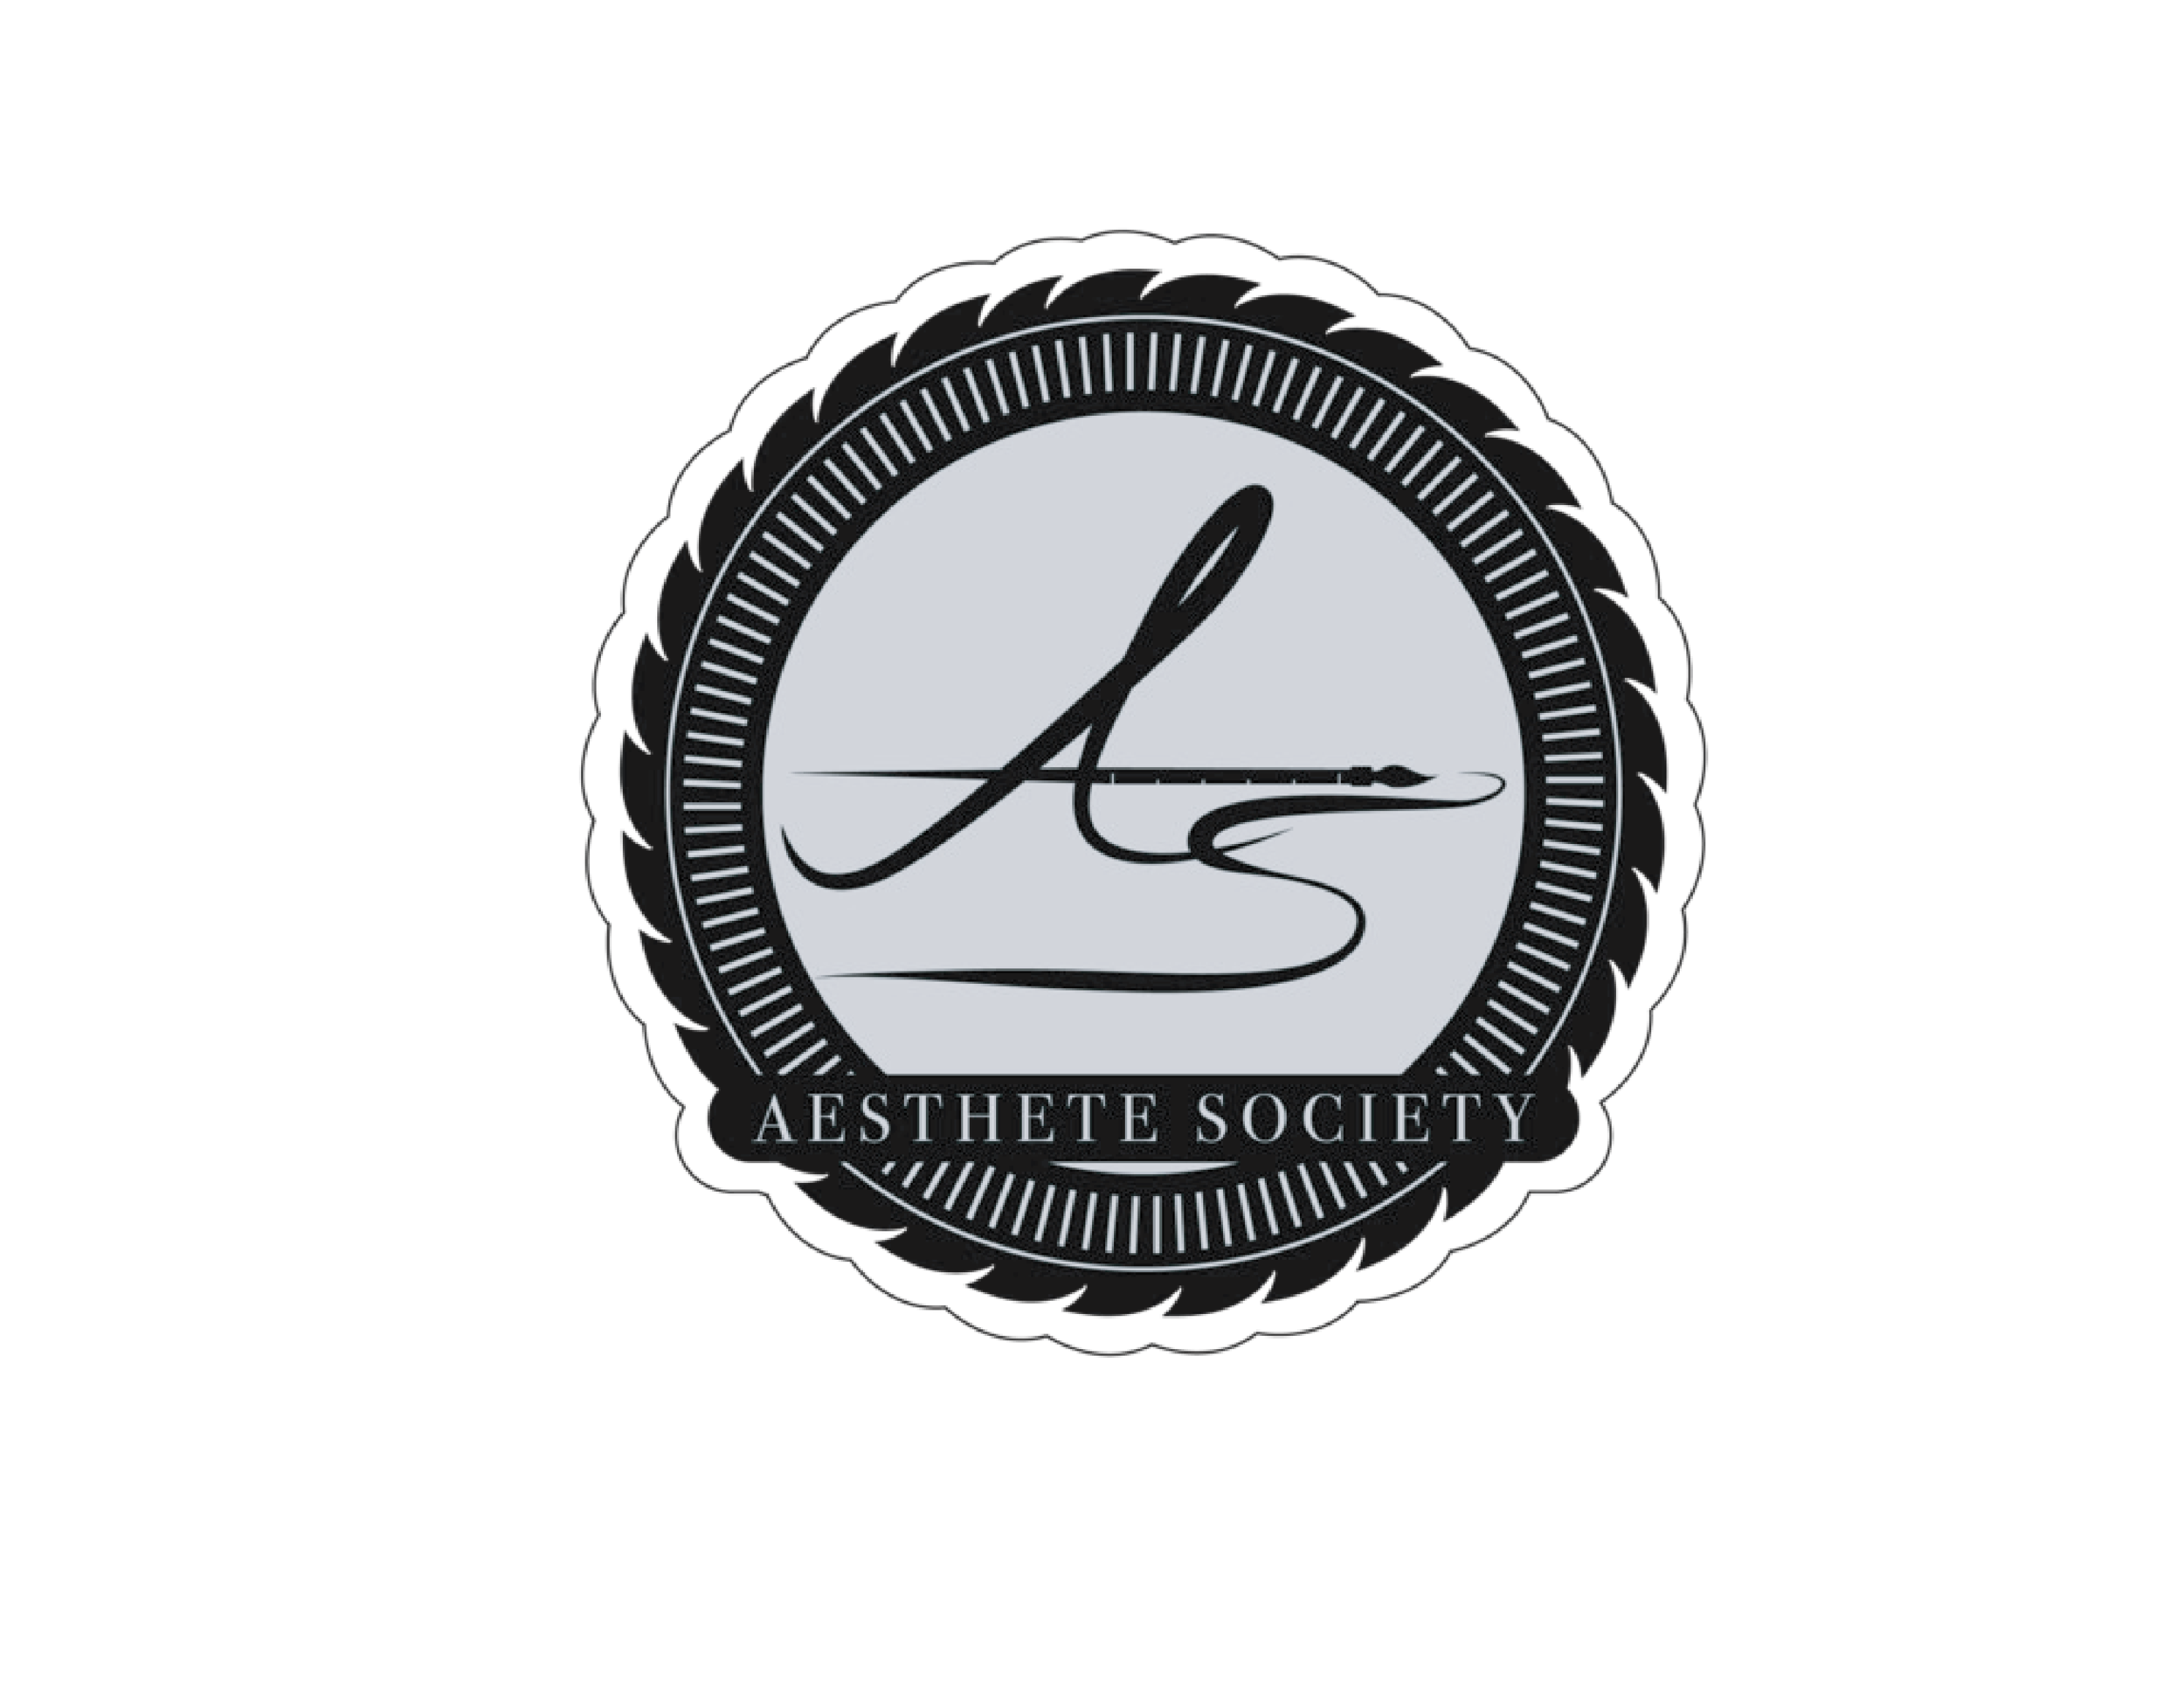 Aesthete Society - HARMONIOUS TEAM OF CREATIVES...Established in the Fall of 2015, Aesthete Society is a creative group dedicated to building a community of global creatives. We create interactive art, fashion, and beauty experiences that are open and inviting to diverse audiences. Through our shows and experiences, Aesthete Society's focus is to encourage an interactive dialogue across diverse artistic platforms, mediums and locations.